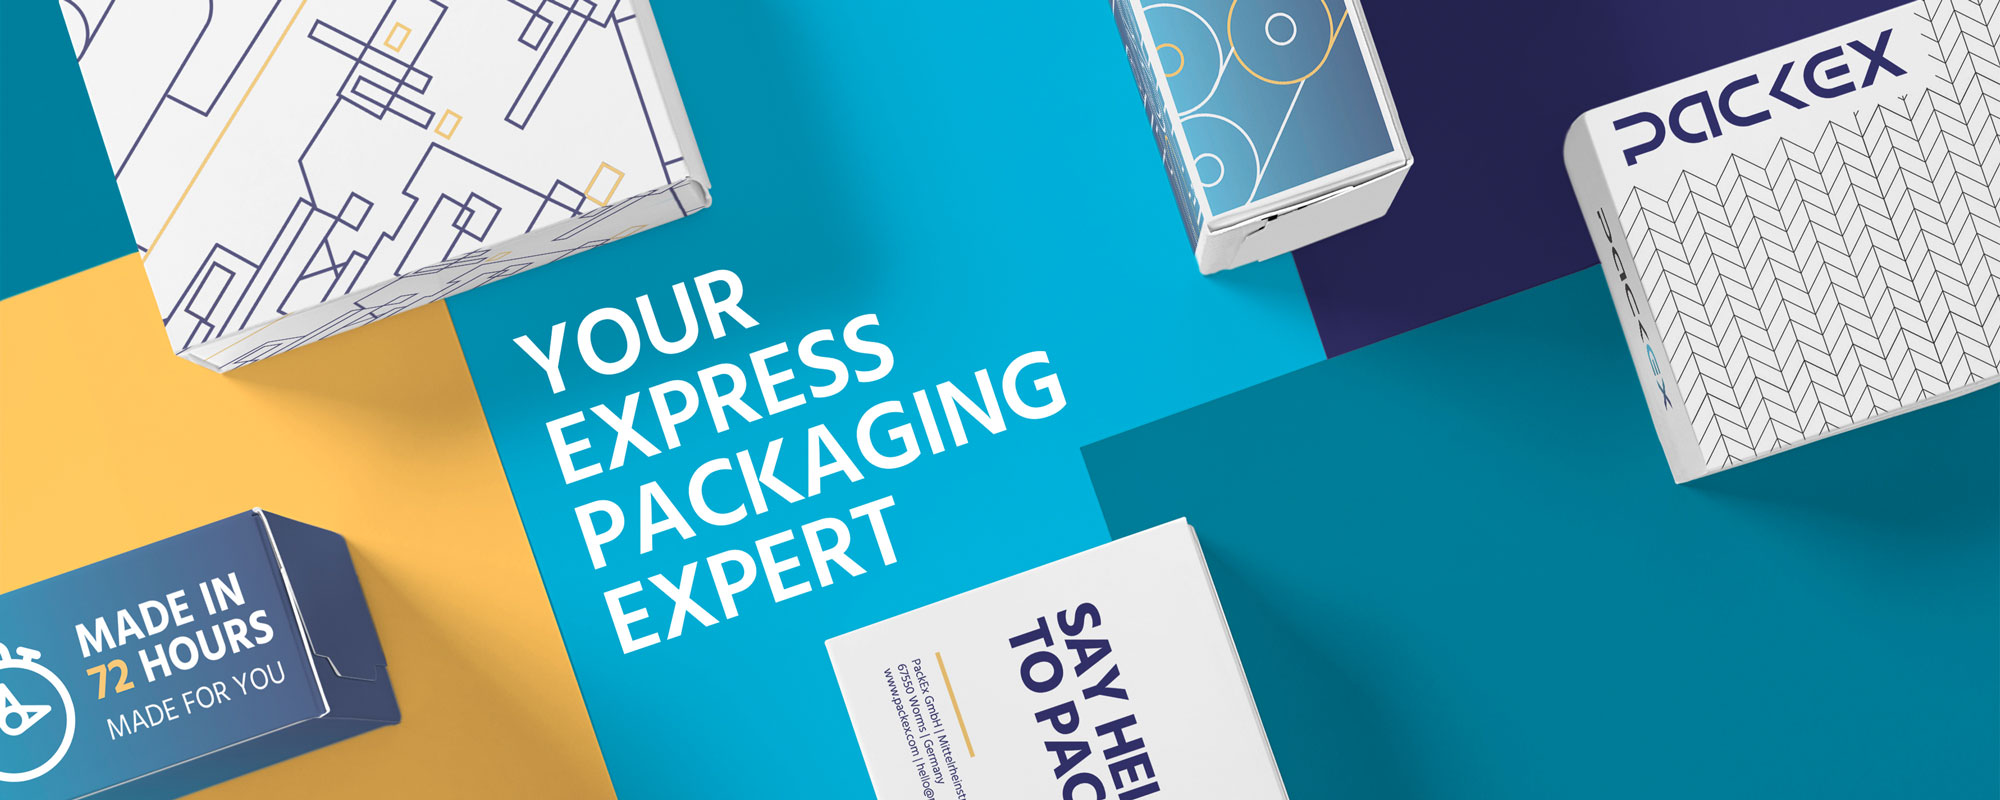 PackEx - YOUR EXPRESS PACKAGING EXPERT